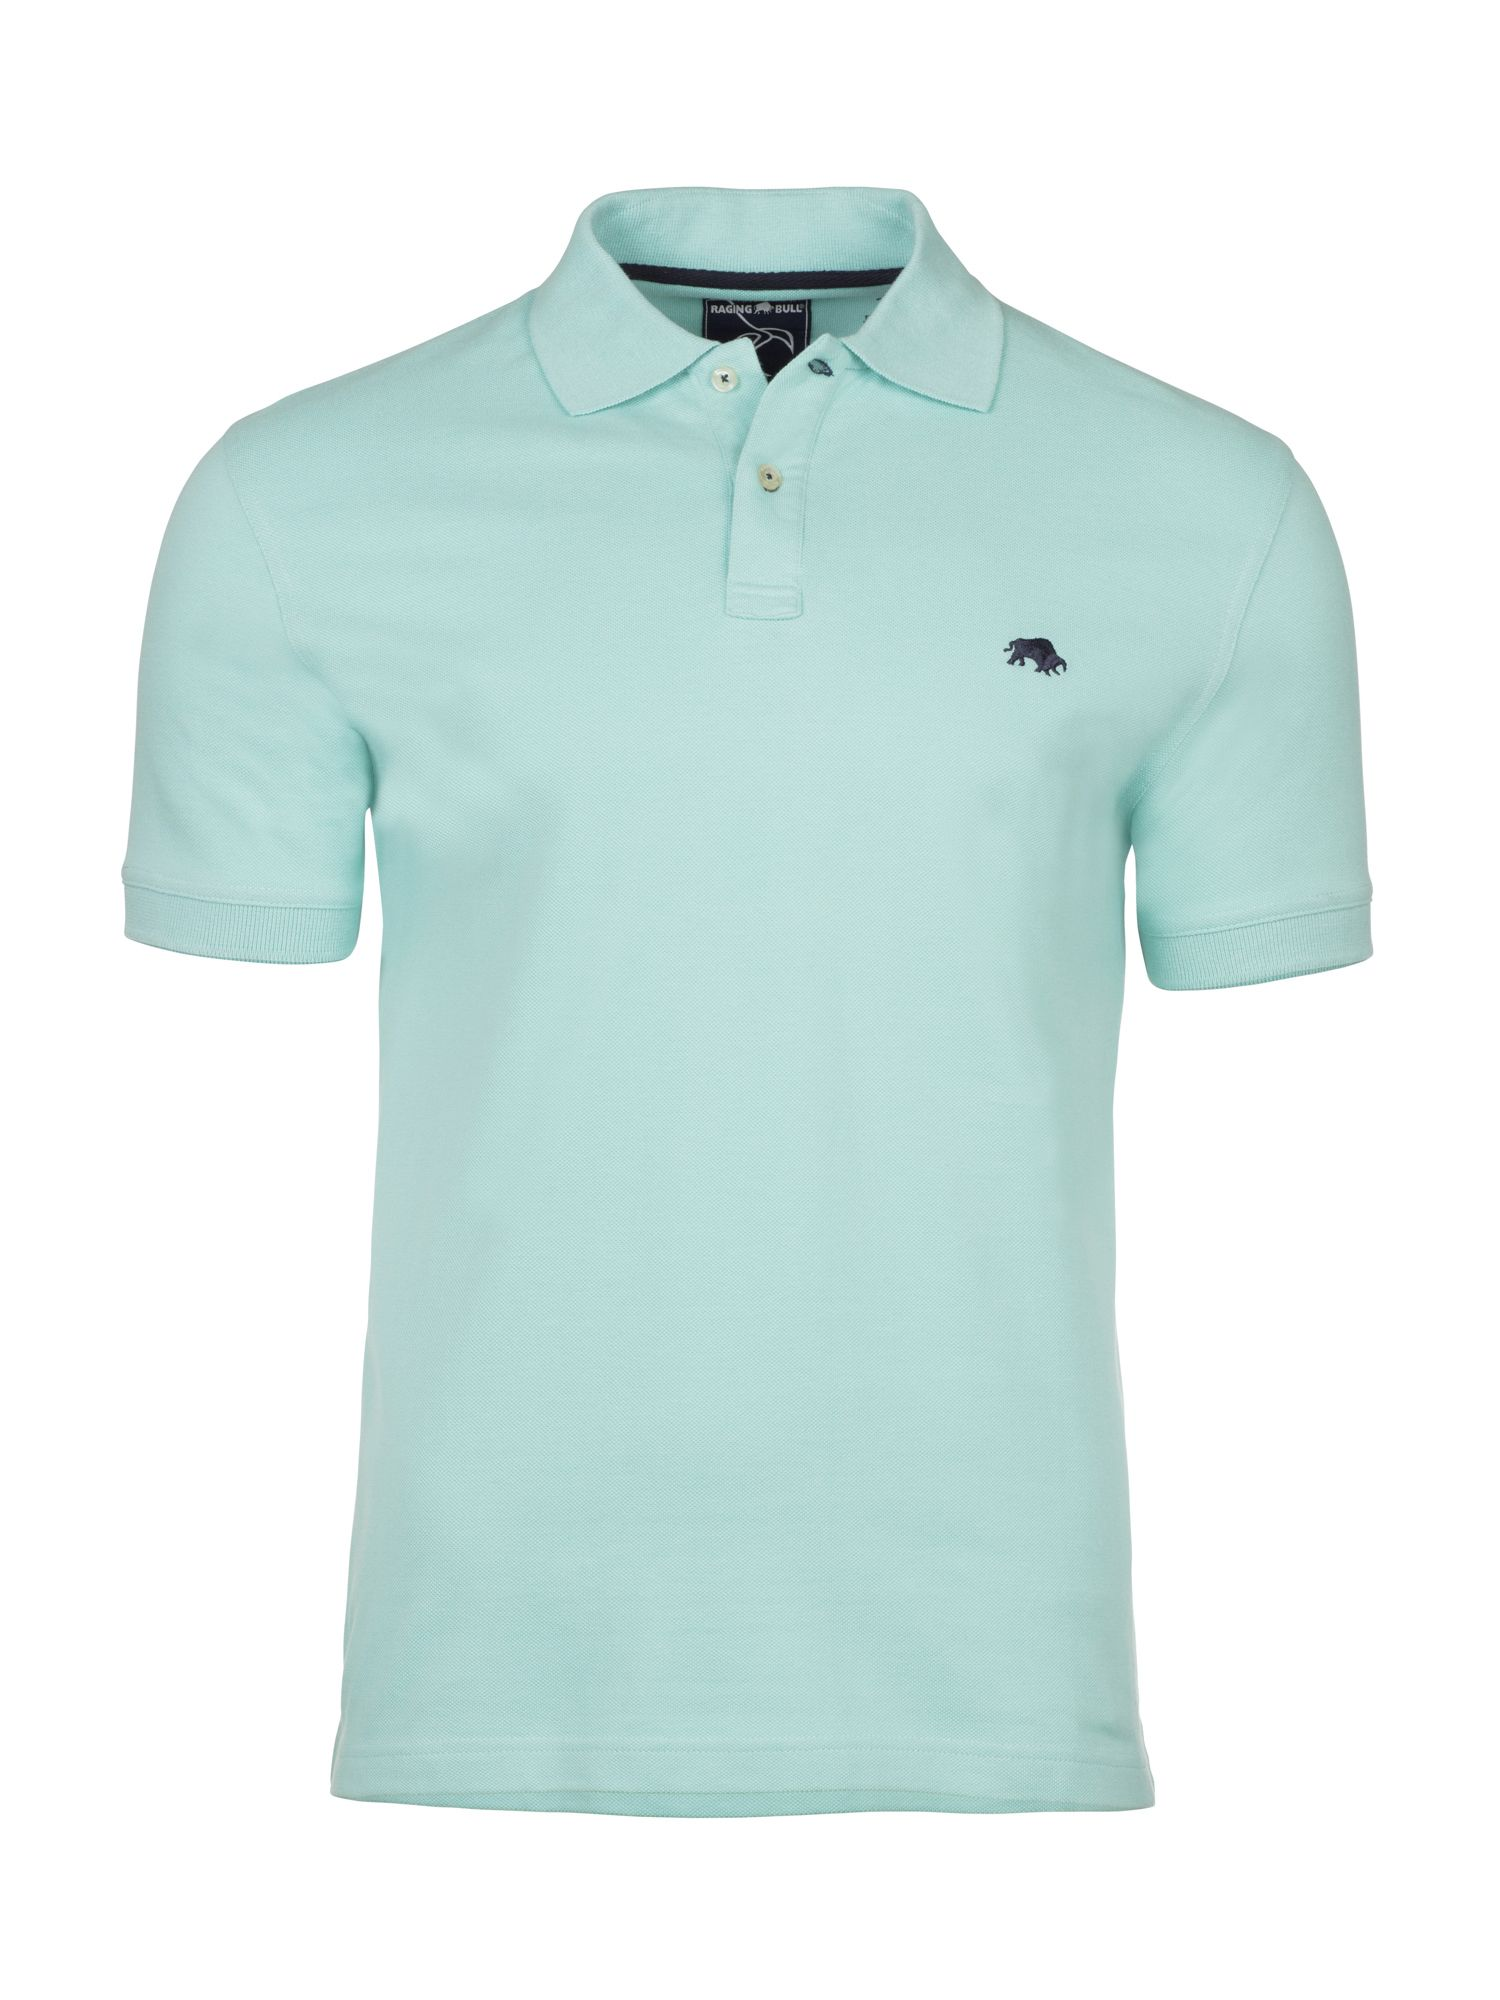 Men's Raging Bull New Signature Polo, Mint